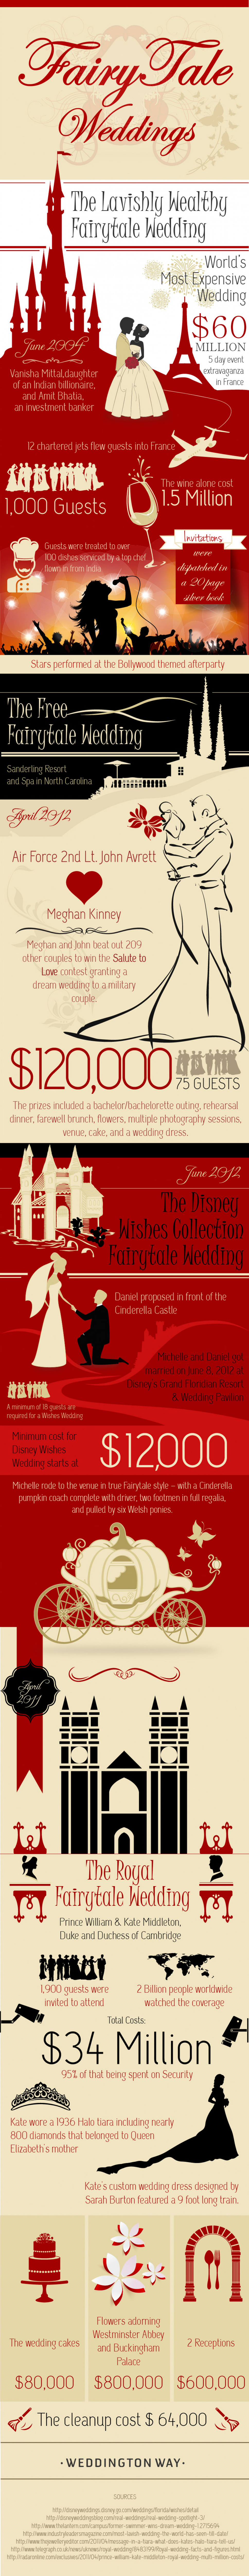 Fairy Tale Weddings Infographic